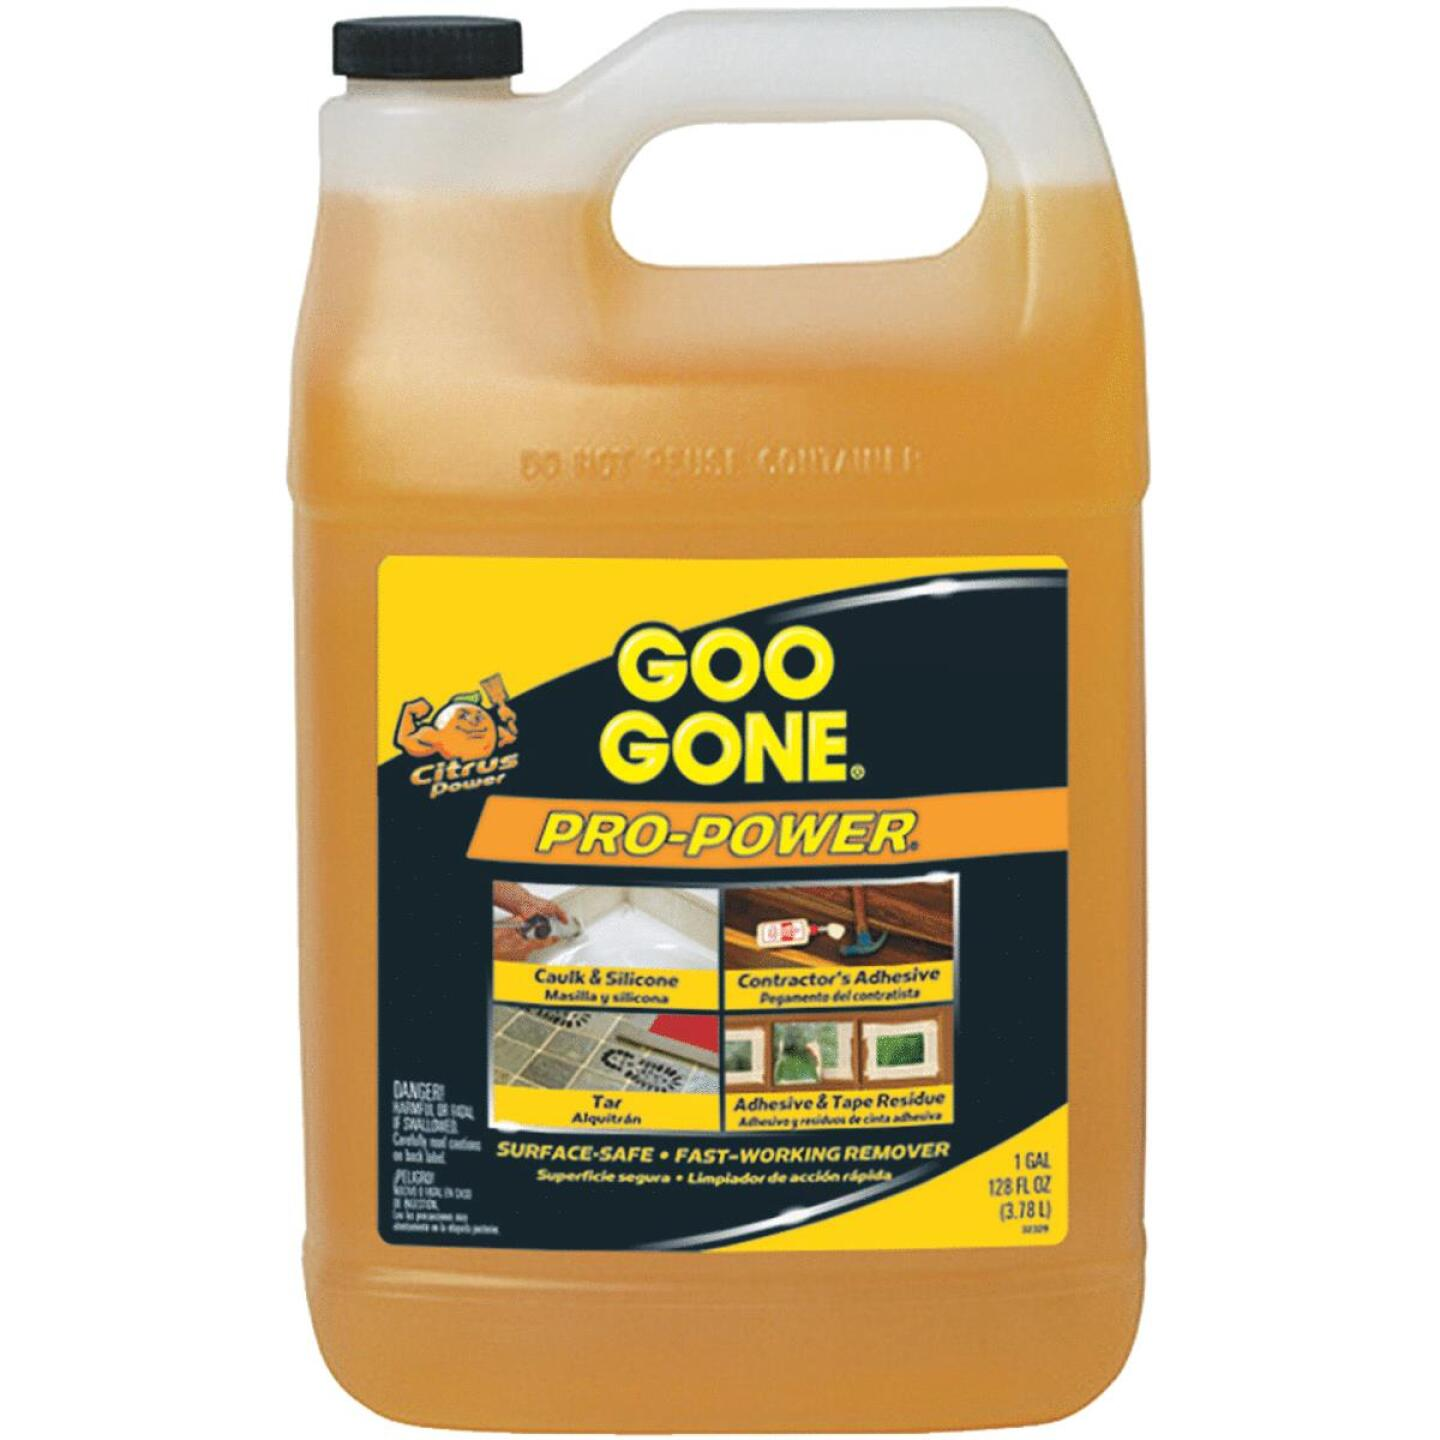 Goo Gone 1 Gal. Pro-Power Adhesive Remover Image 183